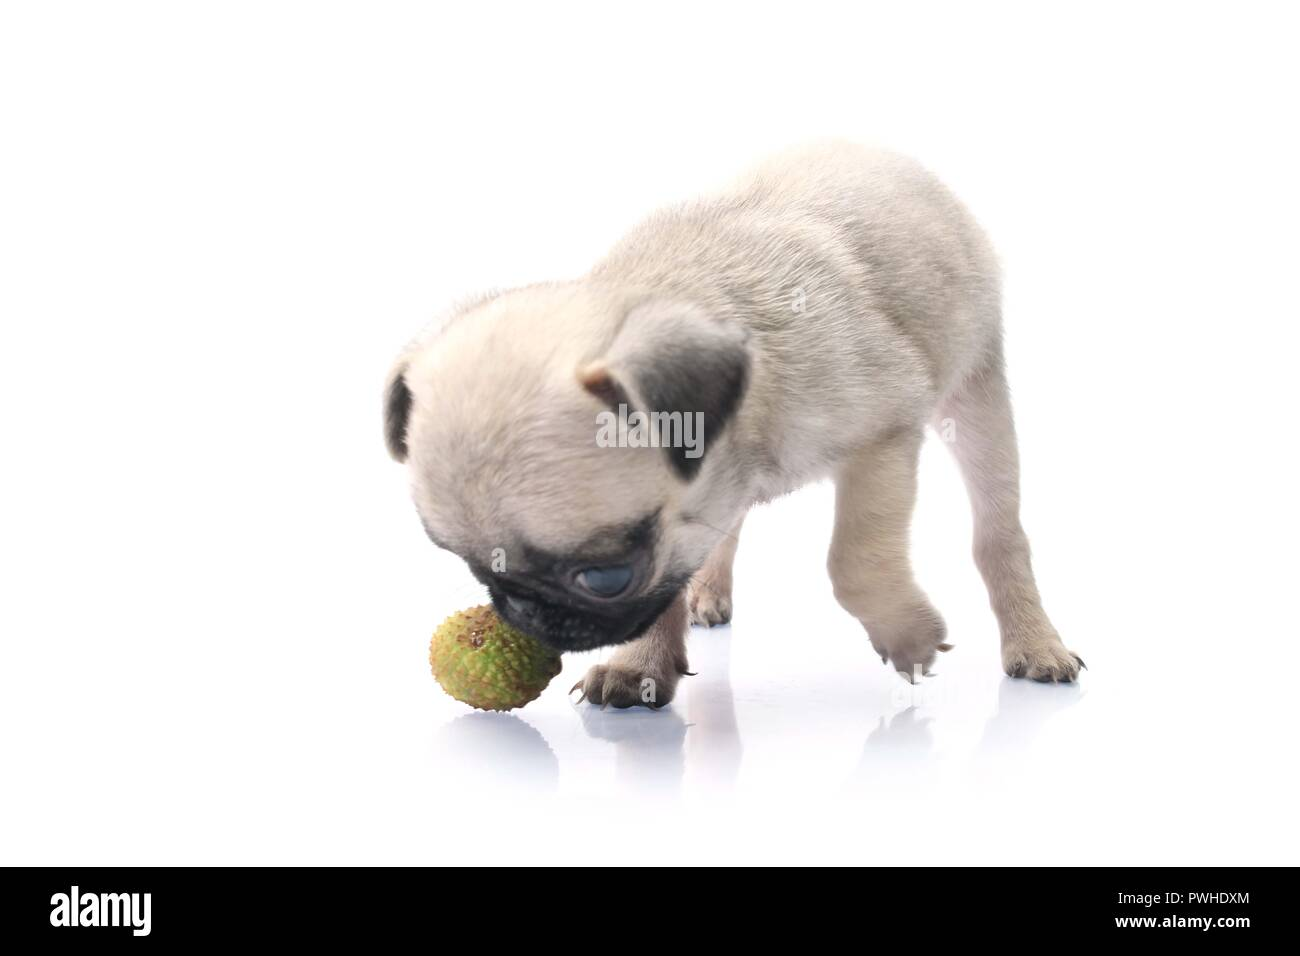 Side Pose Of Cute Pug Dog With Ball. Isolated On White Background. - Stock Image